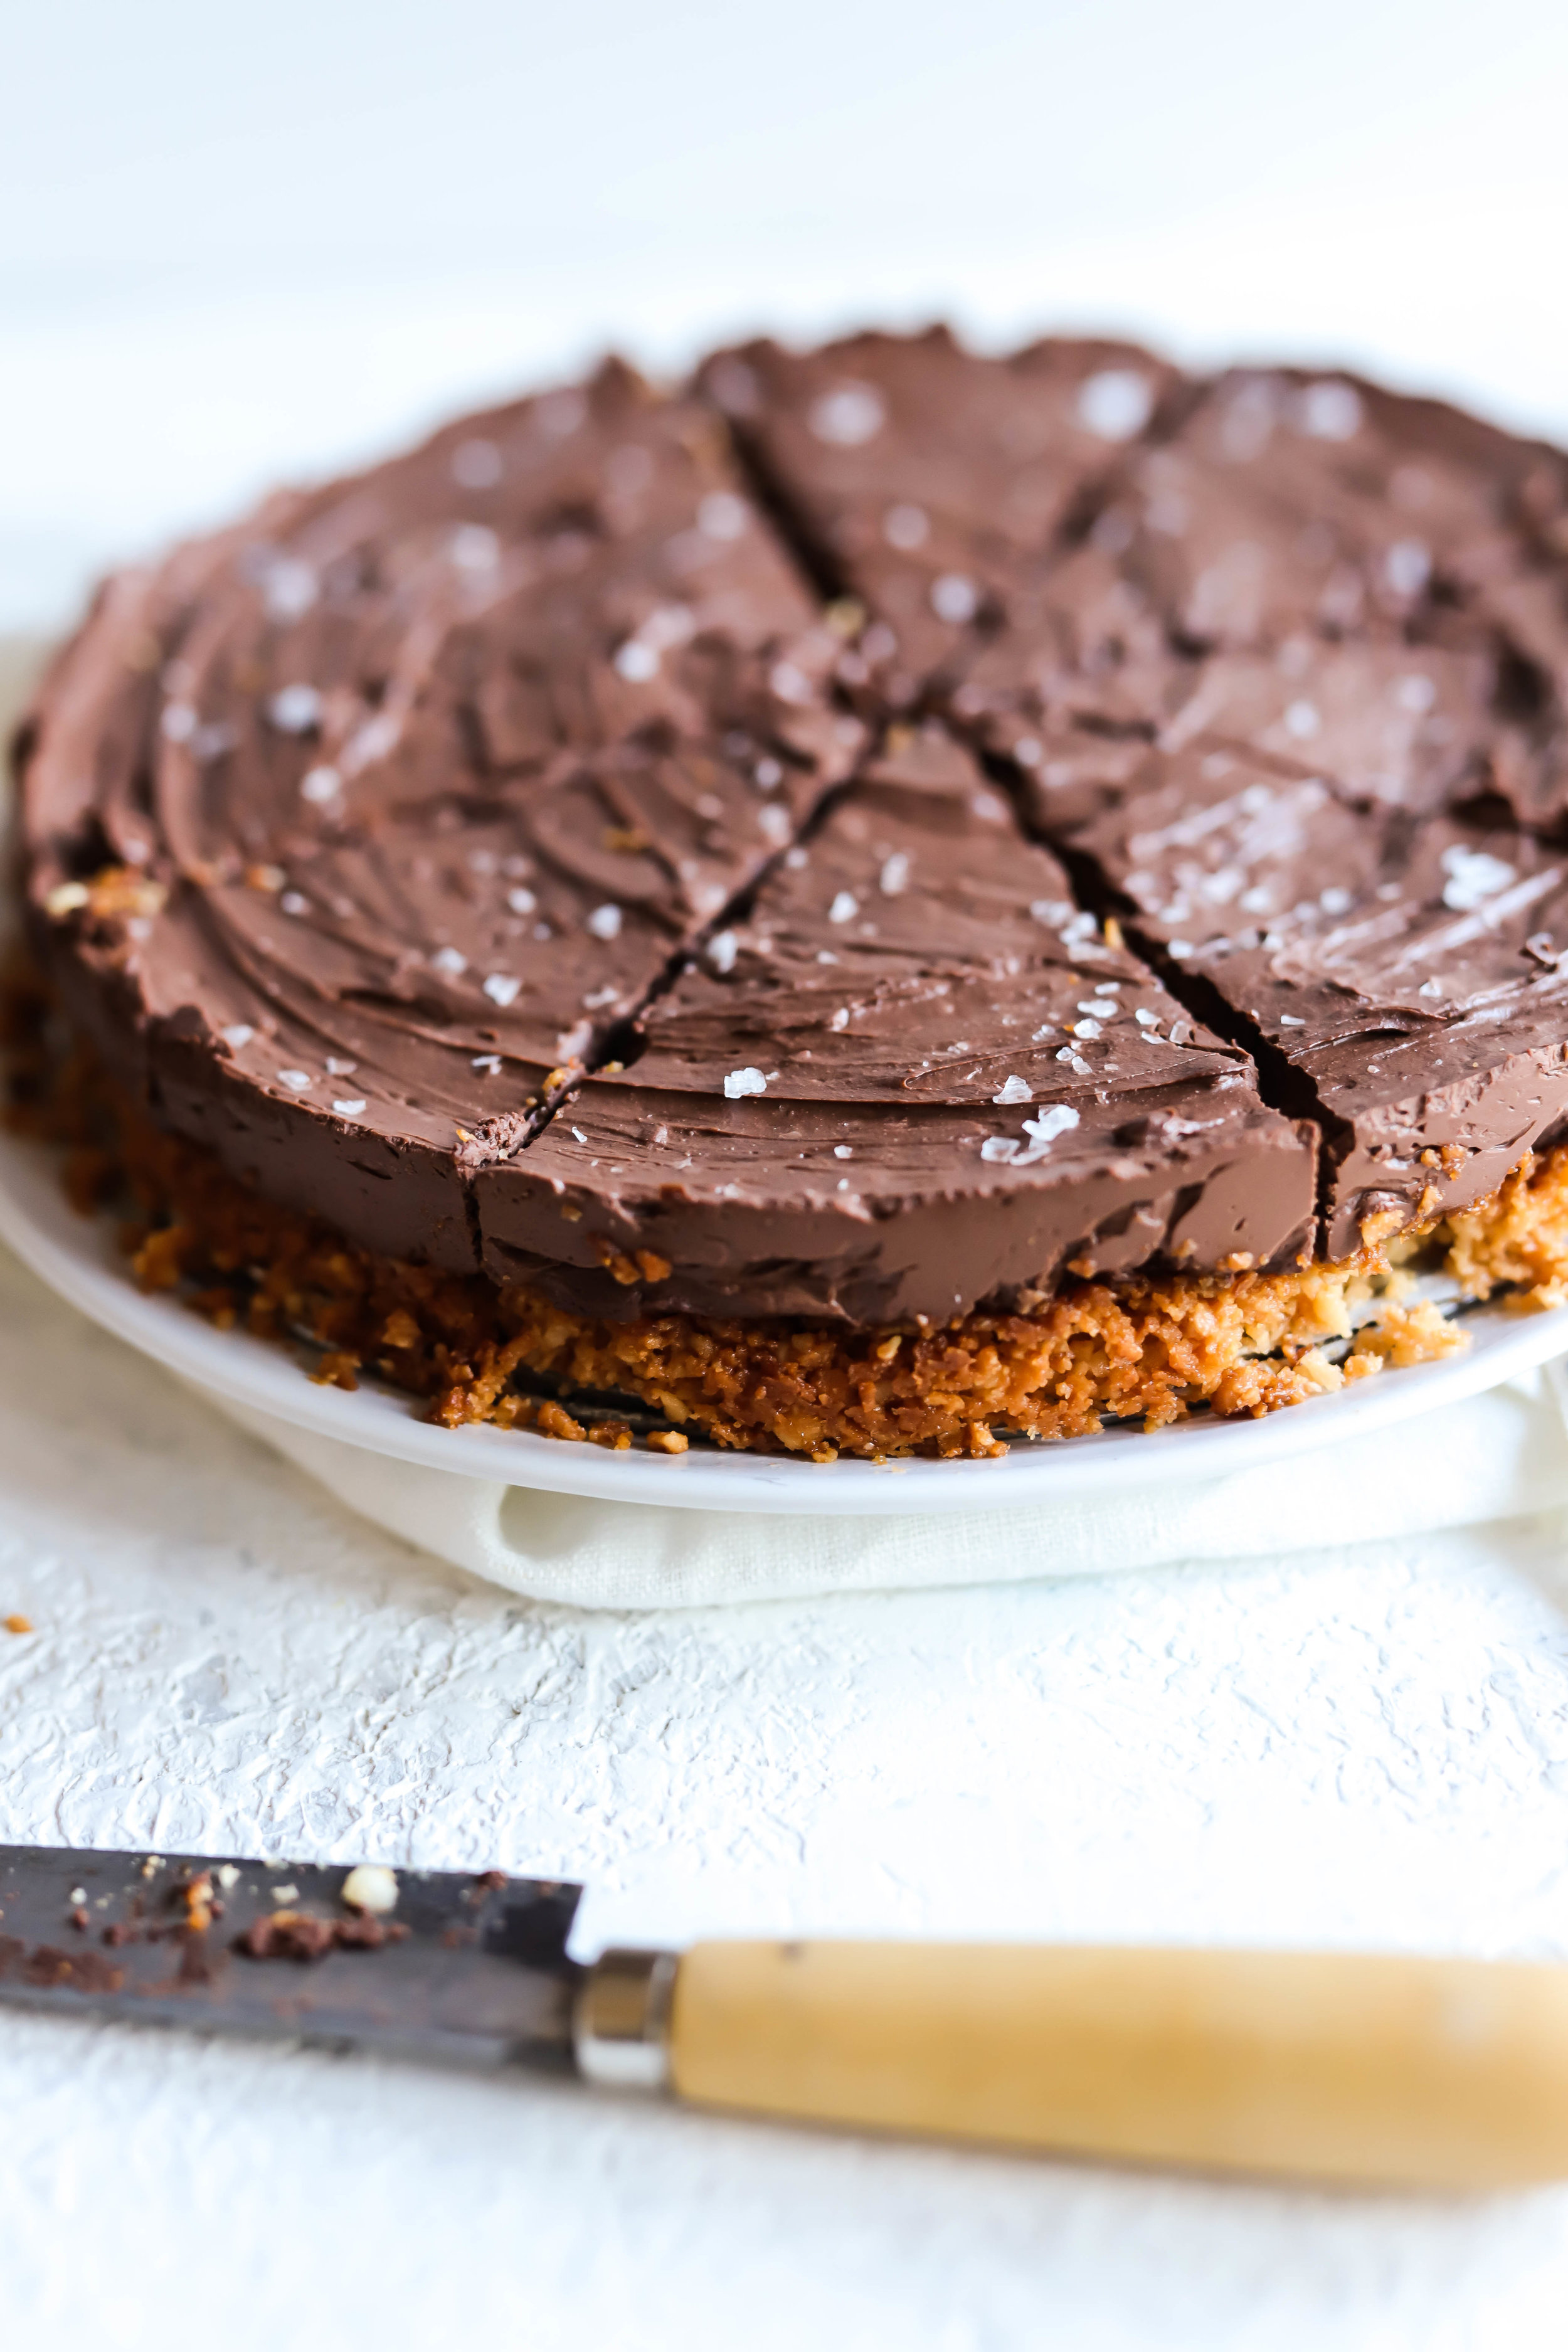 vegan and gluten-free chocolate pie sliced with flakes of sea salt on top